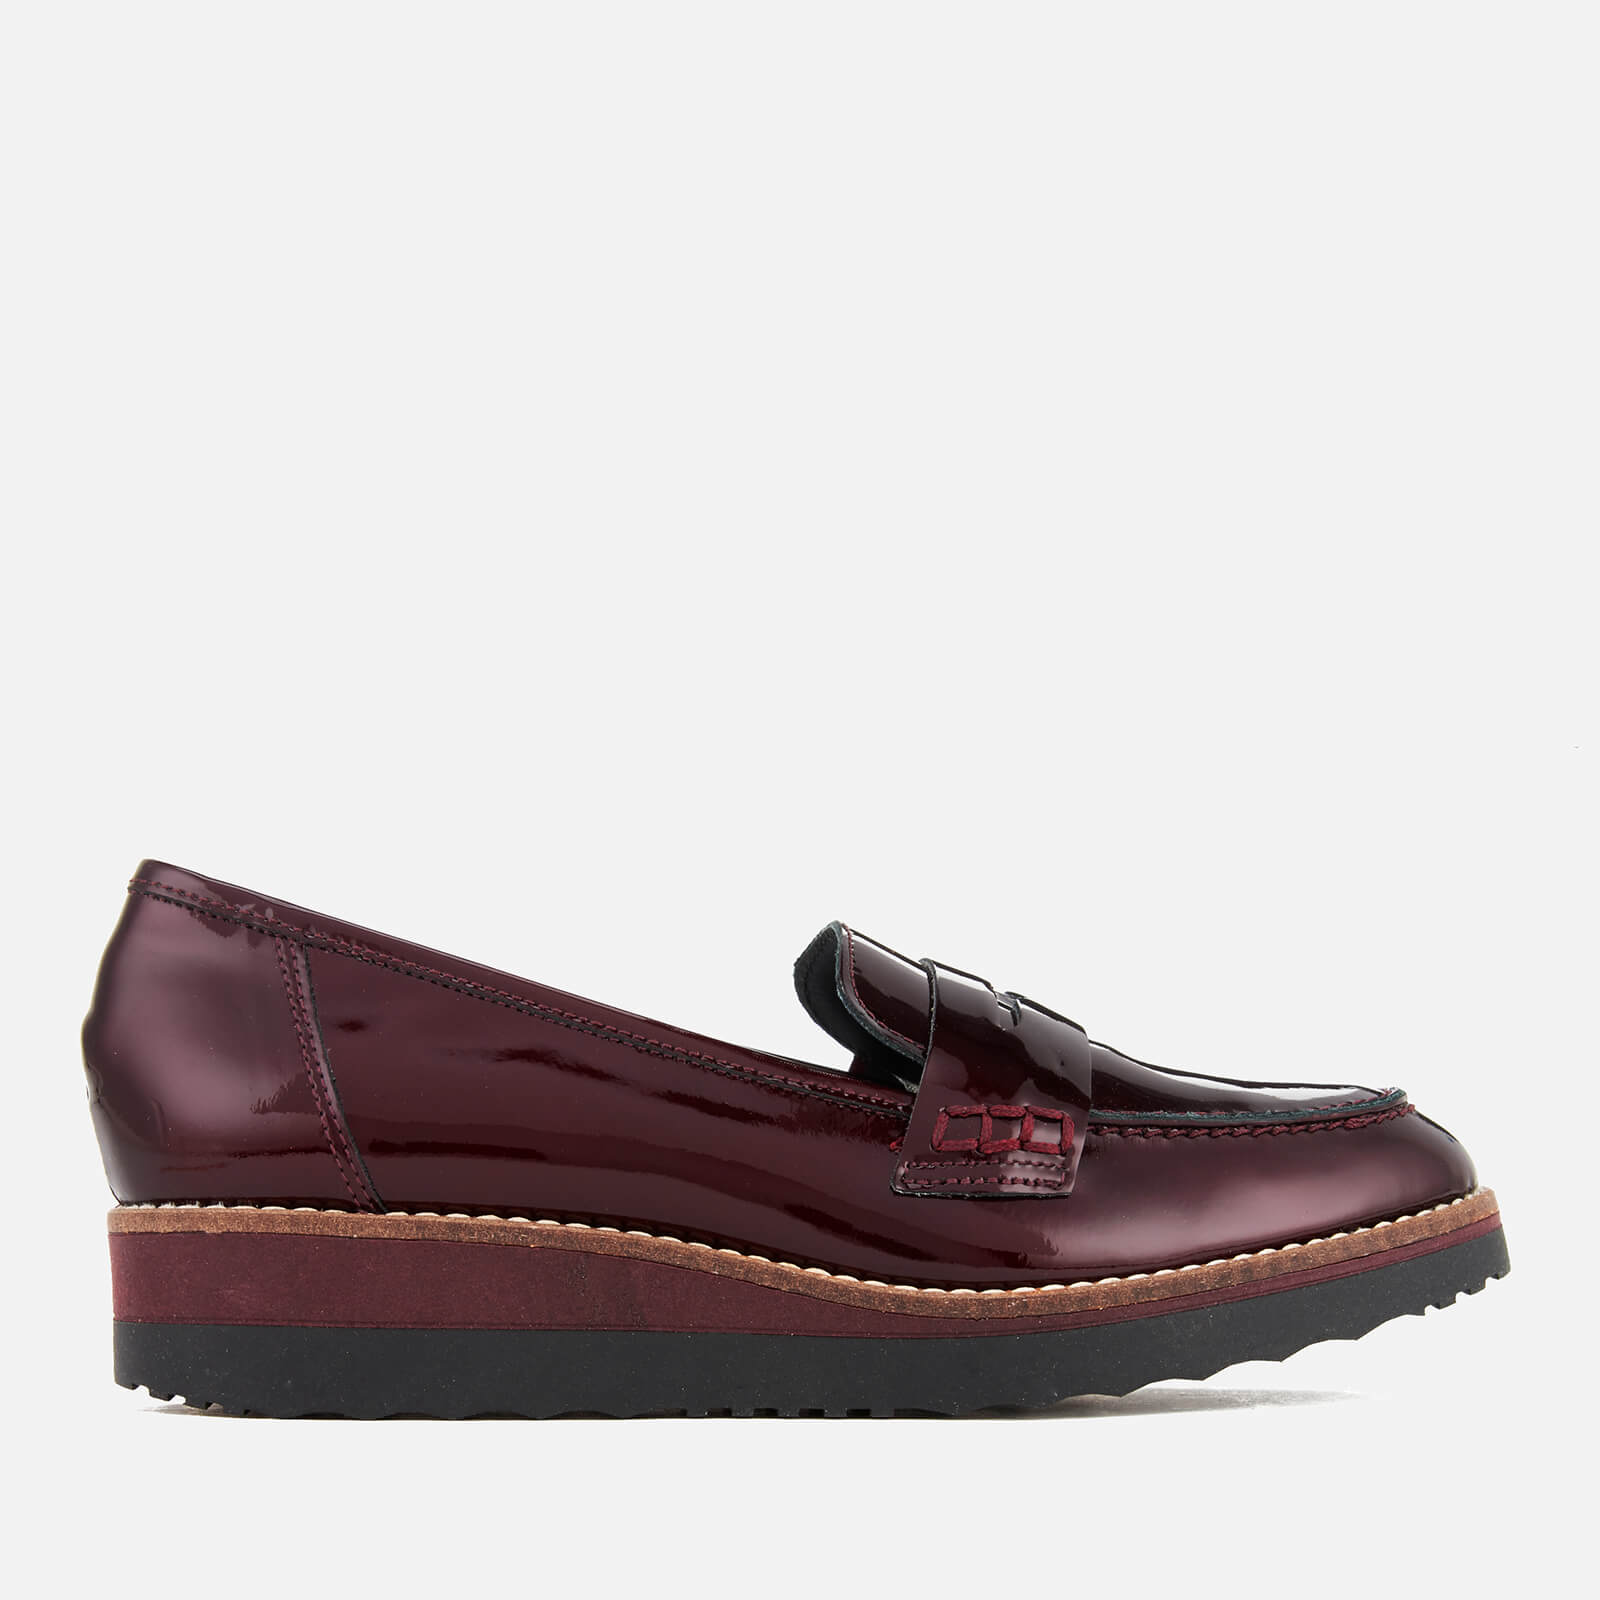 6798a6f3935 Dune Women s Graphic Patent Leather Loafers - Burgundy